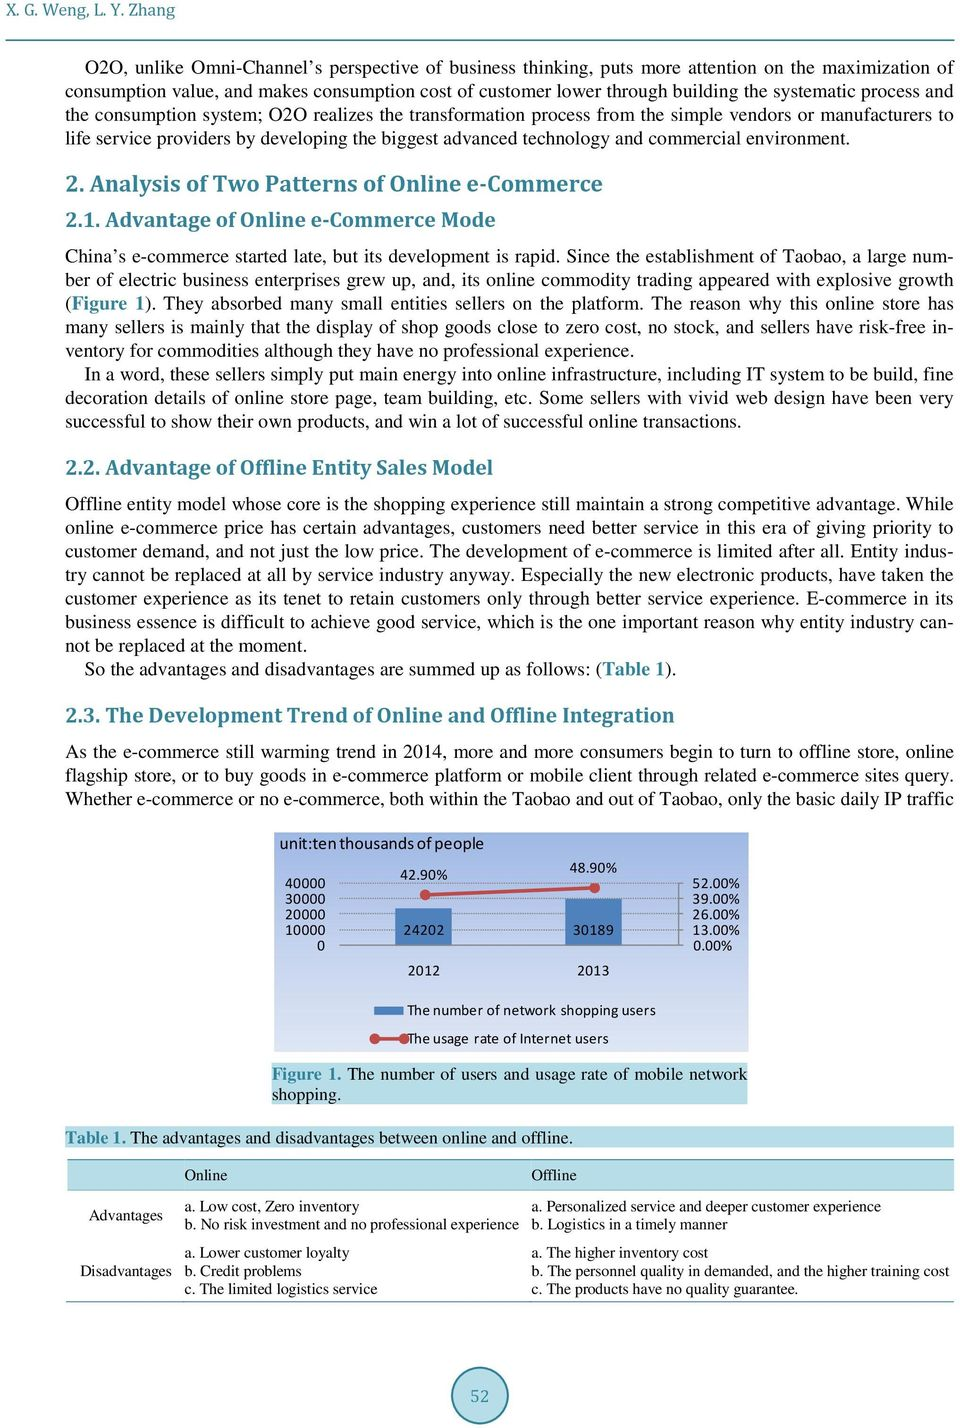 commercial environment. 2. Analysis of Two Patterns of Online e-commerce 2.1. Advantage of Online e-commerce Mode China s e-commerce started late, but its development is rapid.